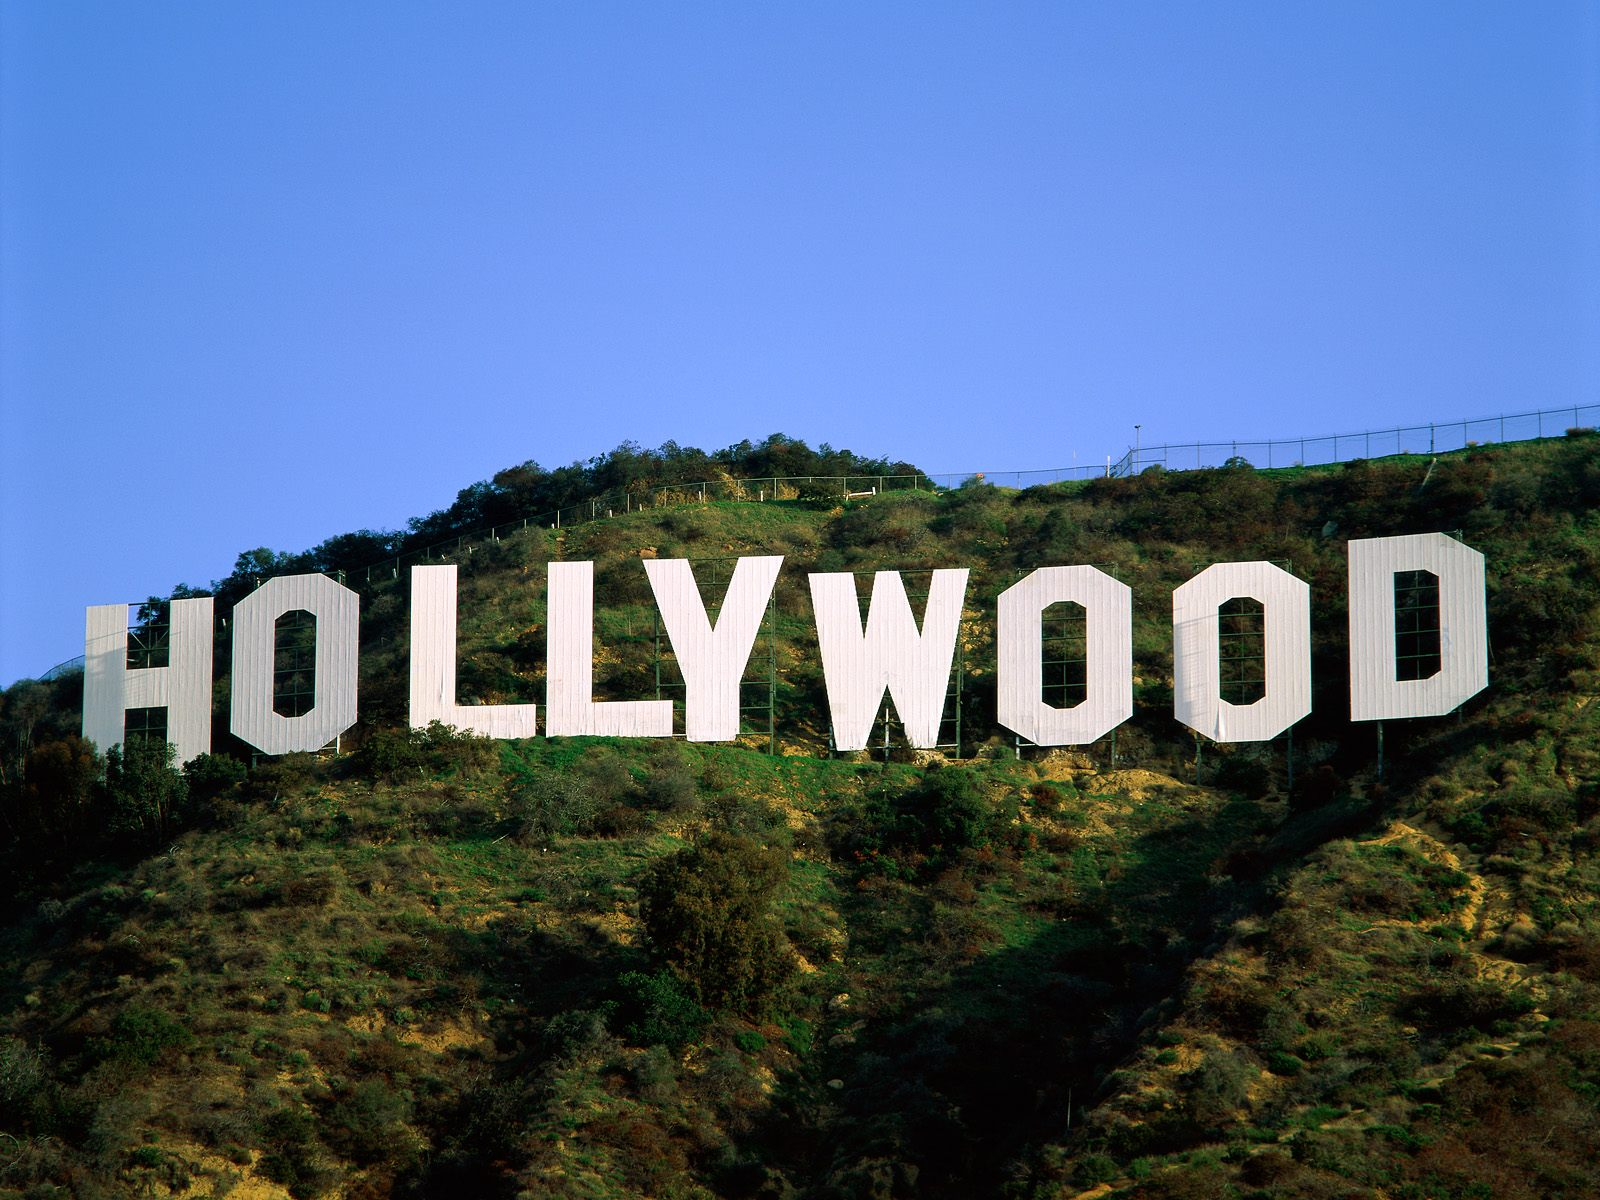 Hollywood Sign (Source: Wikimedia Commons)